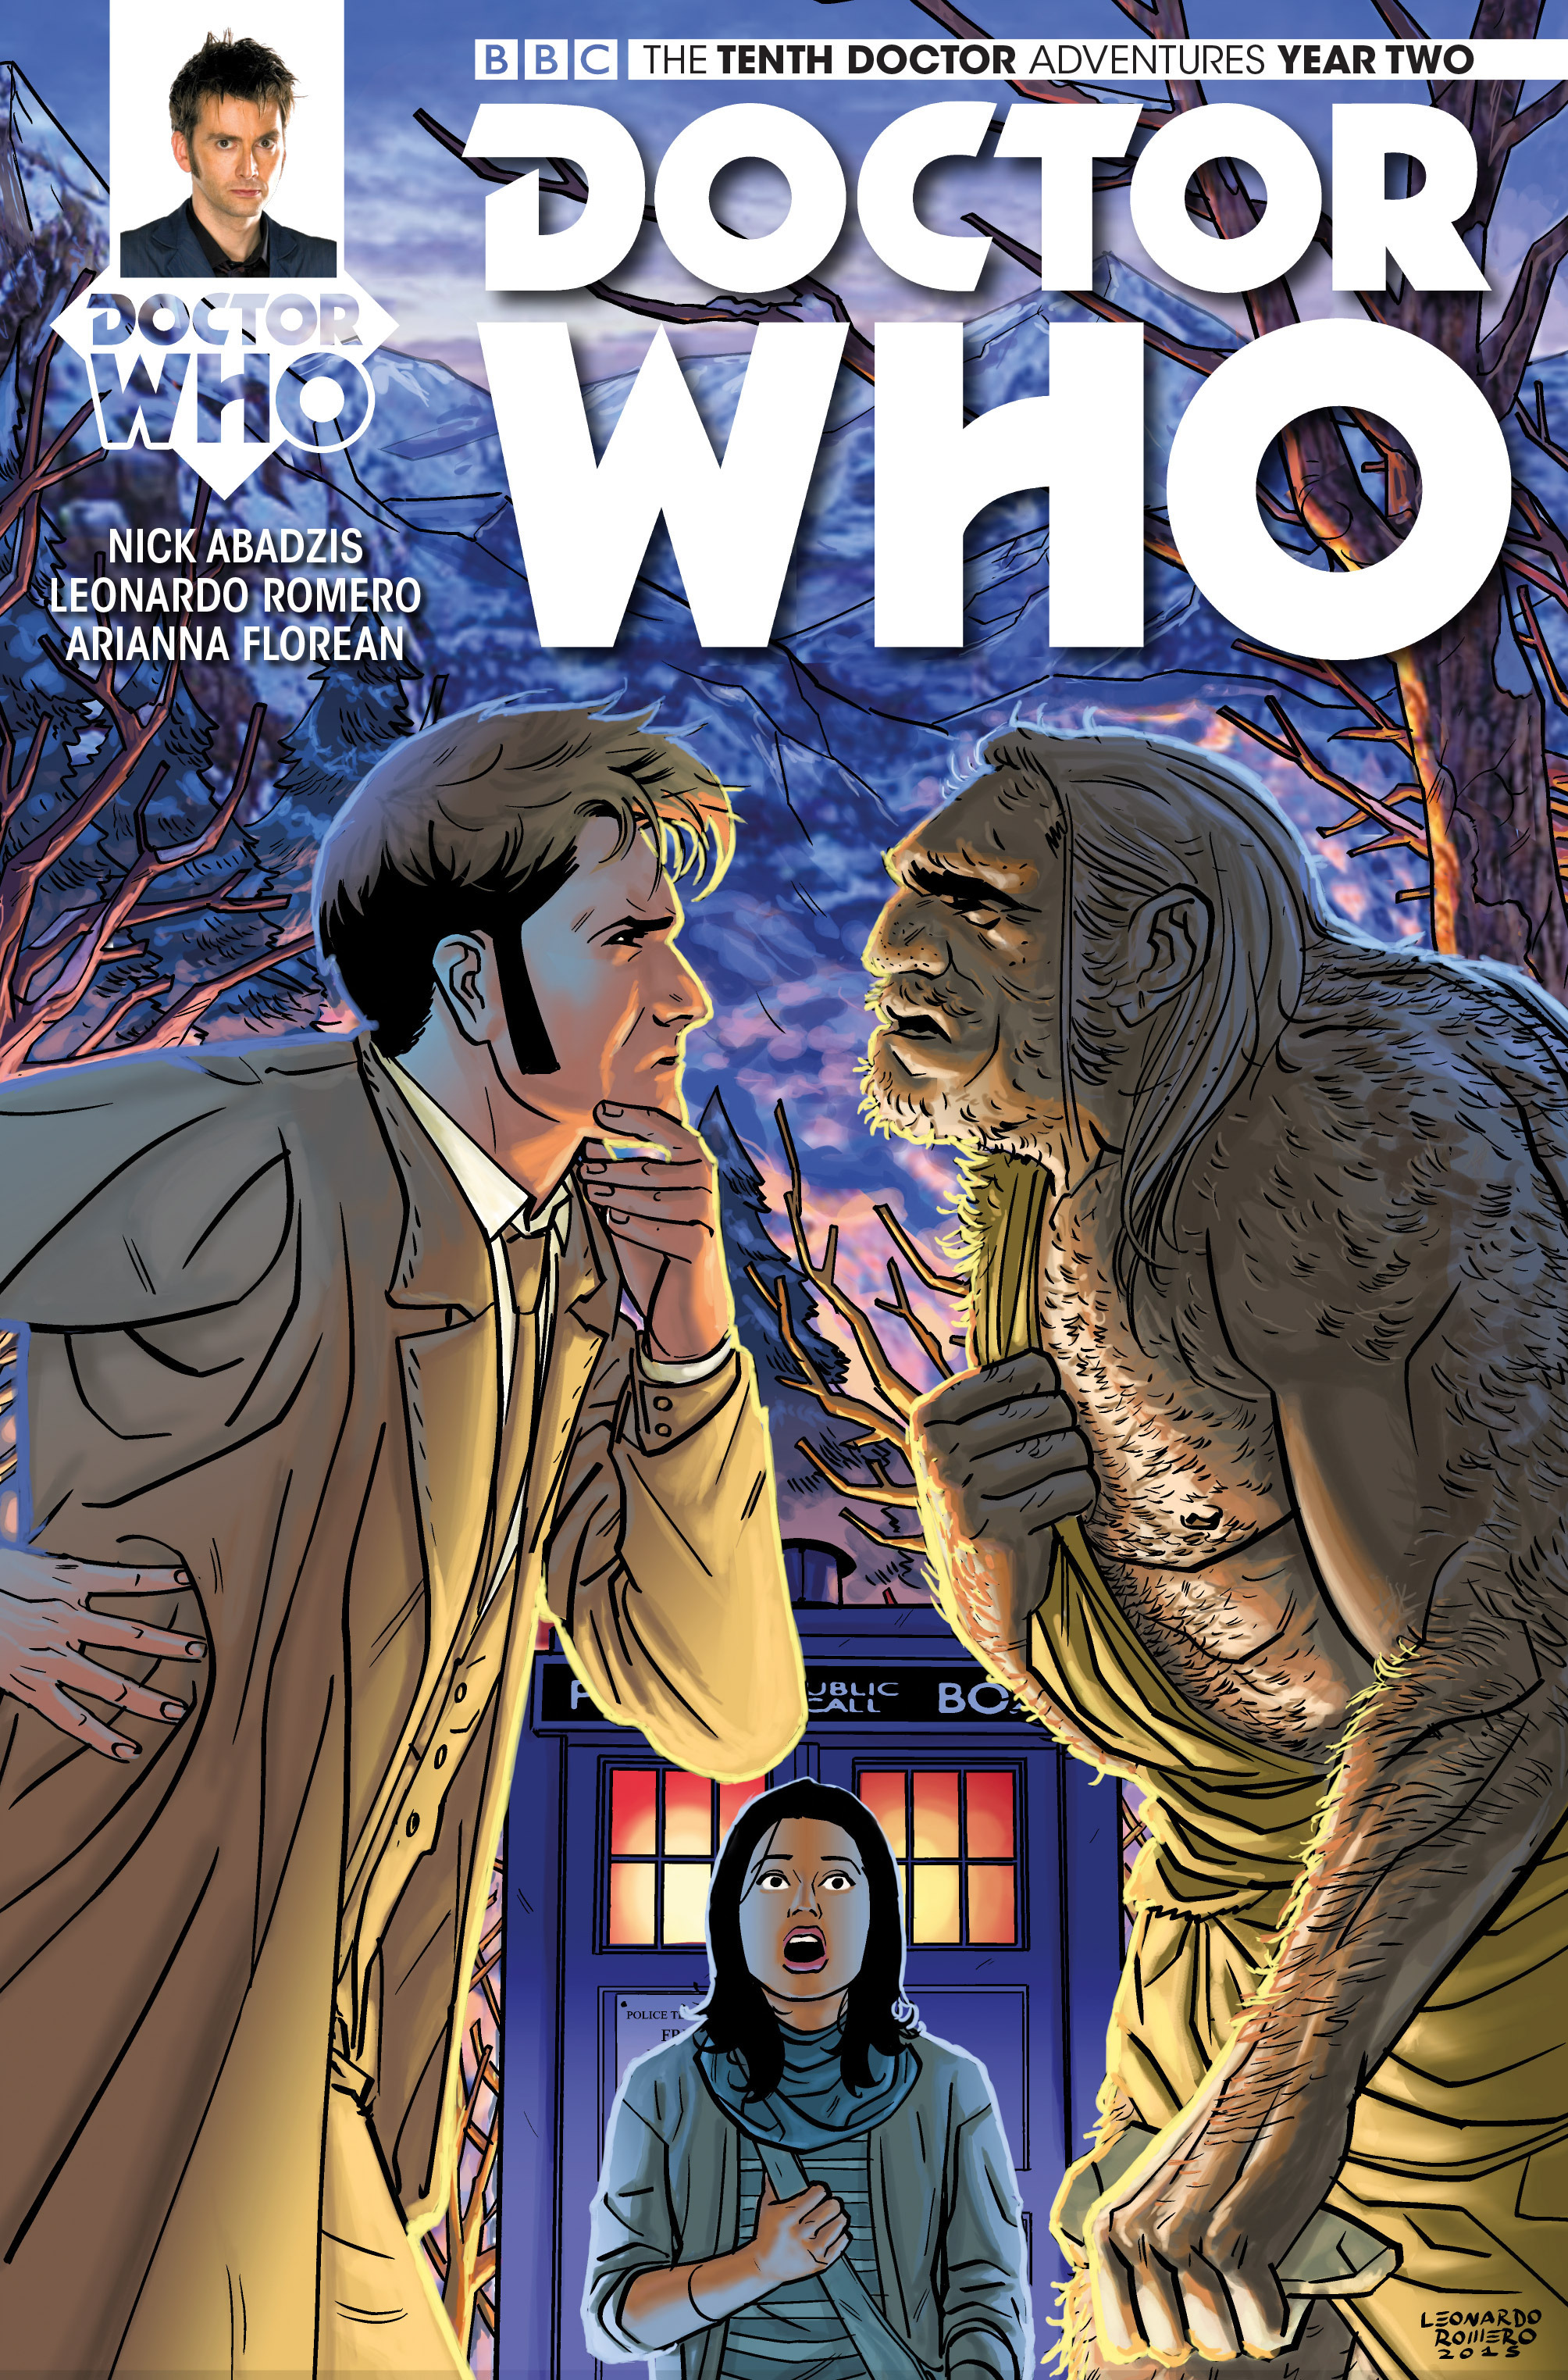 Doctor Who: The Tenth Doctor Year Two 4 Page 1